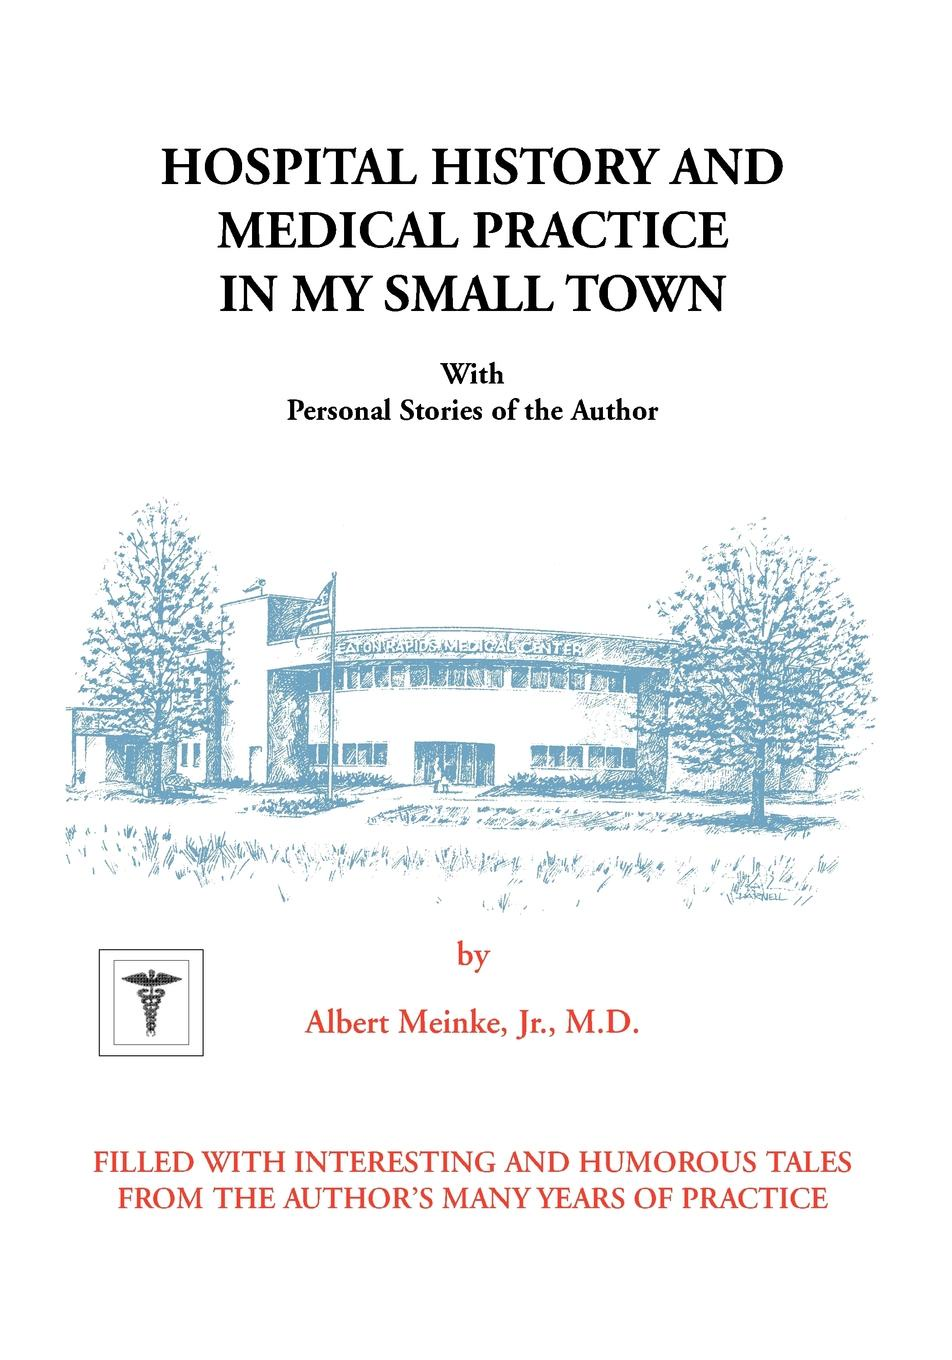 Albert H. Meinke, Jr. M. D. Albert H. Meinke Hospital History and Medical Practice in My Small Town. With Personal Stories of the Author blooming a small town girlhood